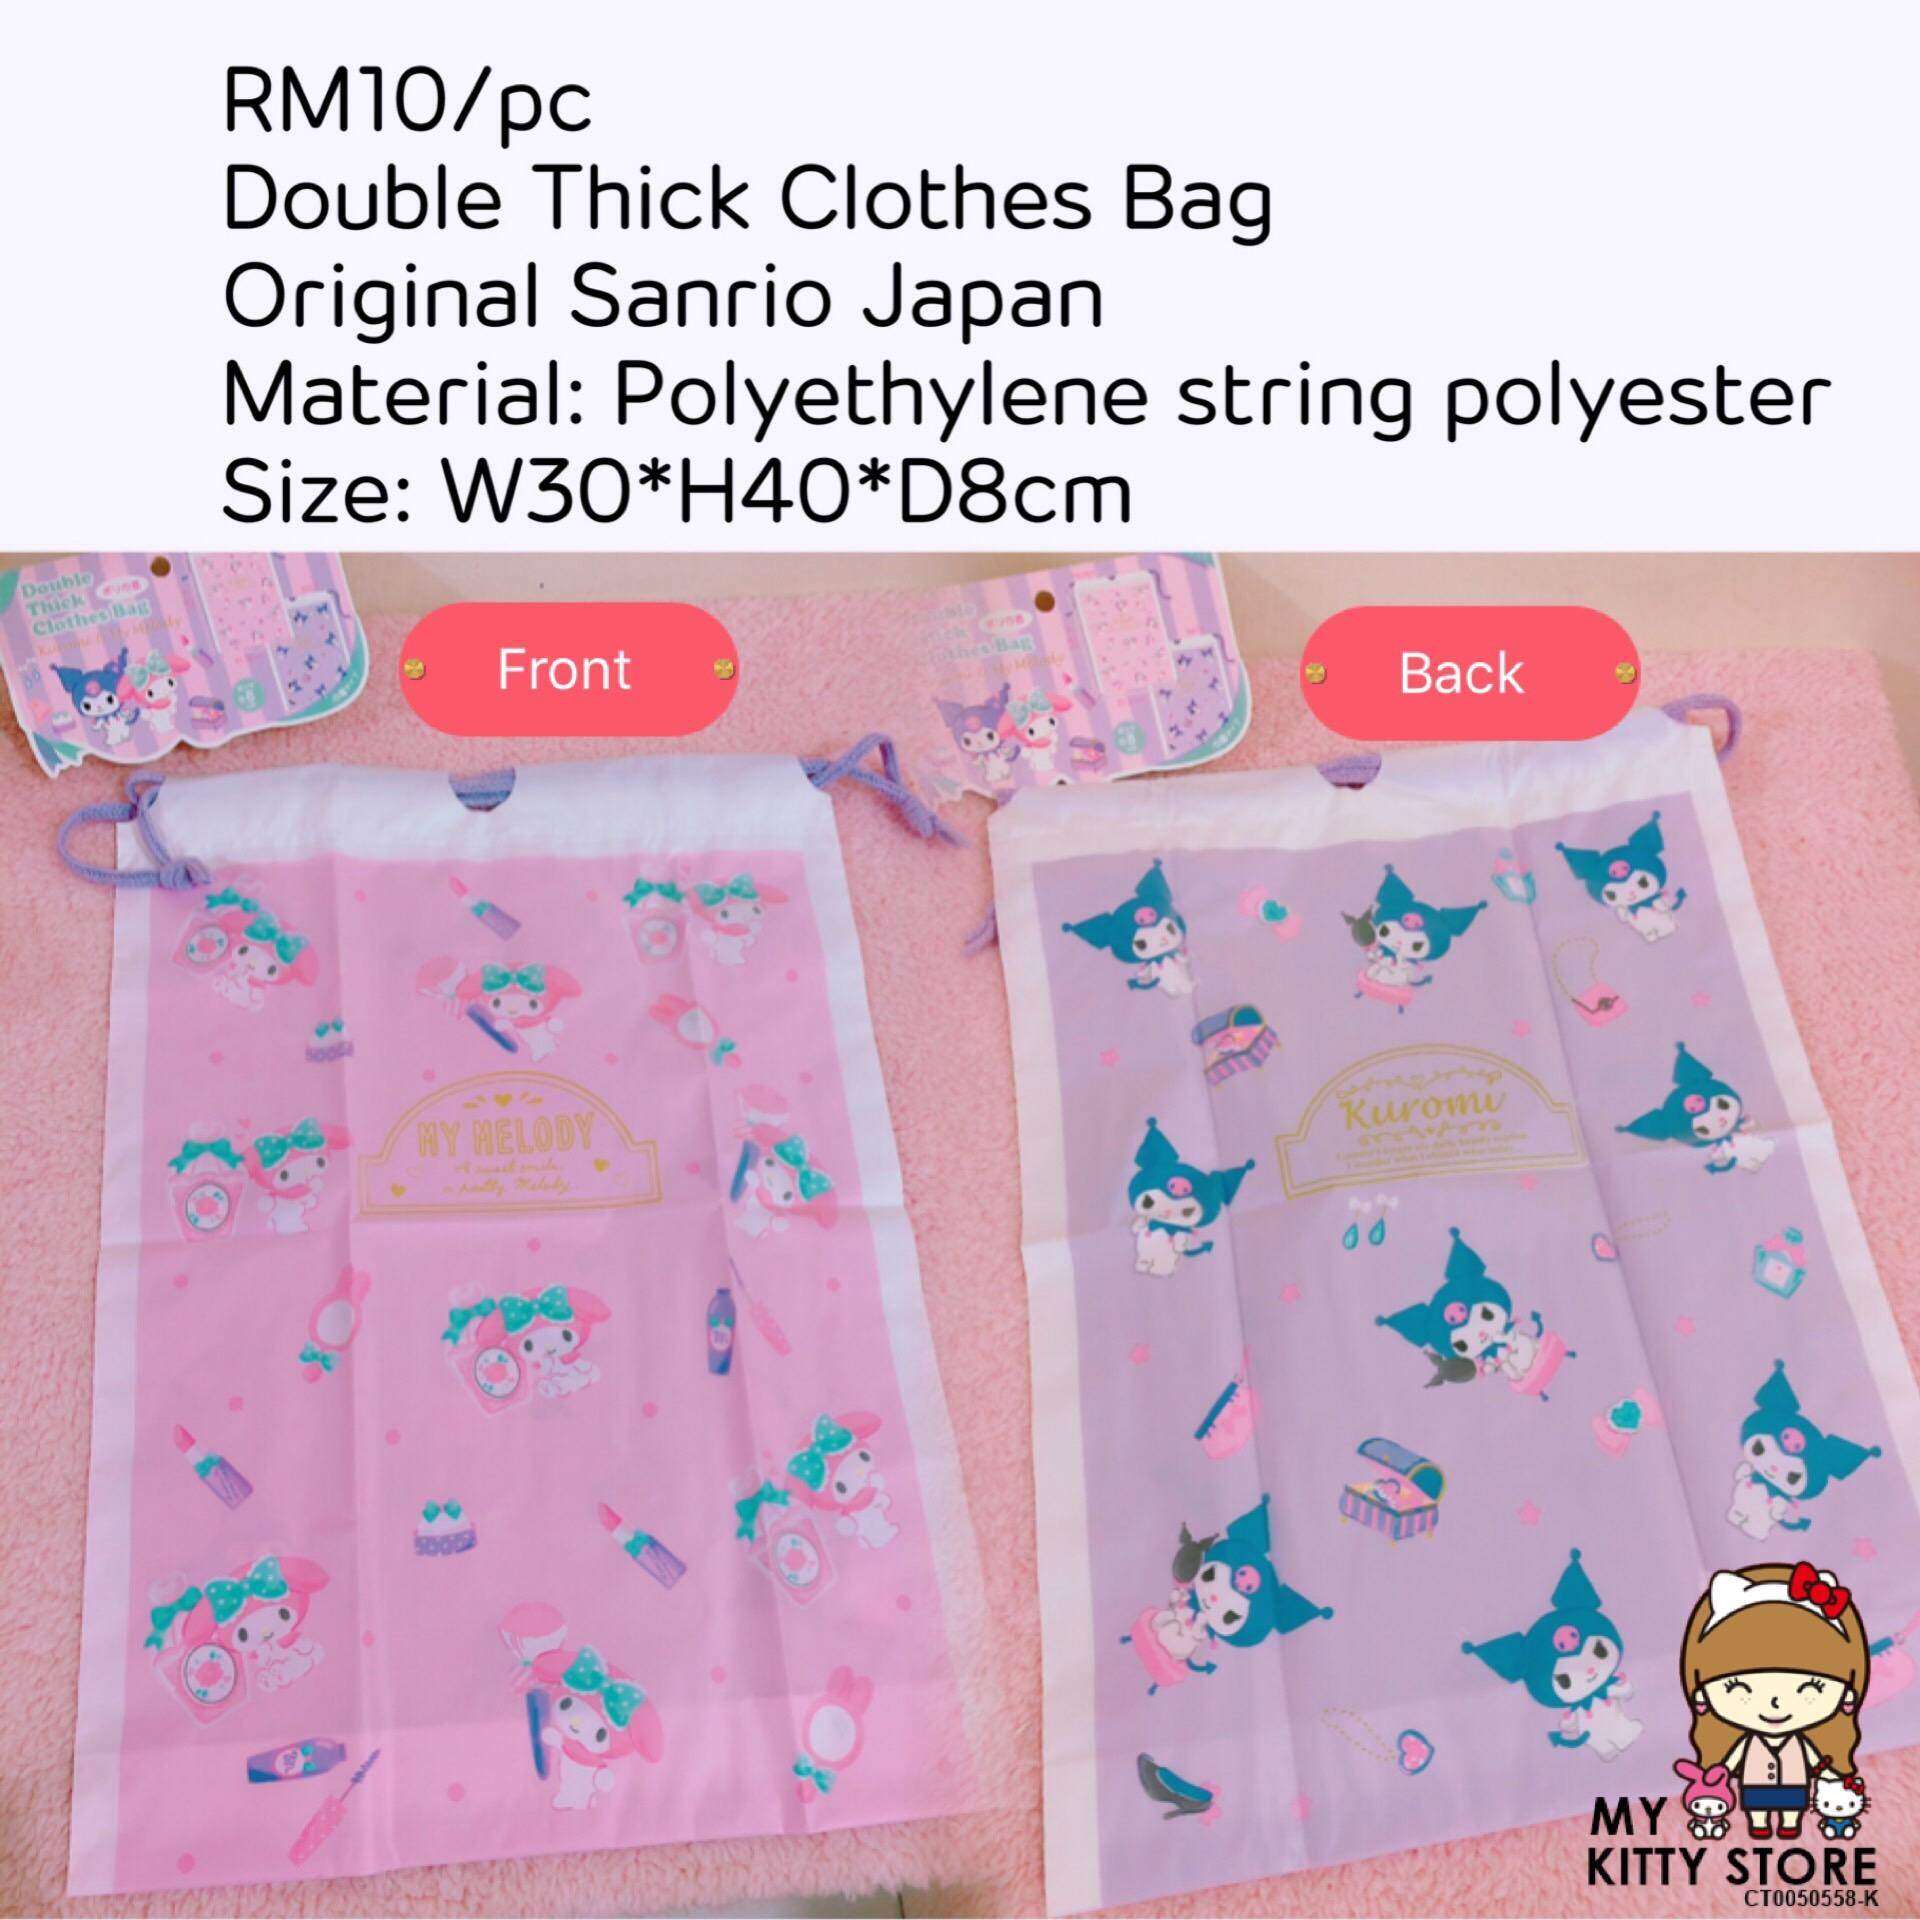 Sanrio Hello Kitty My Melody Double Thick Clothes Bag